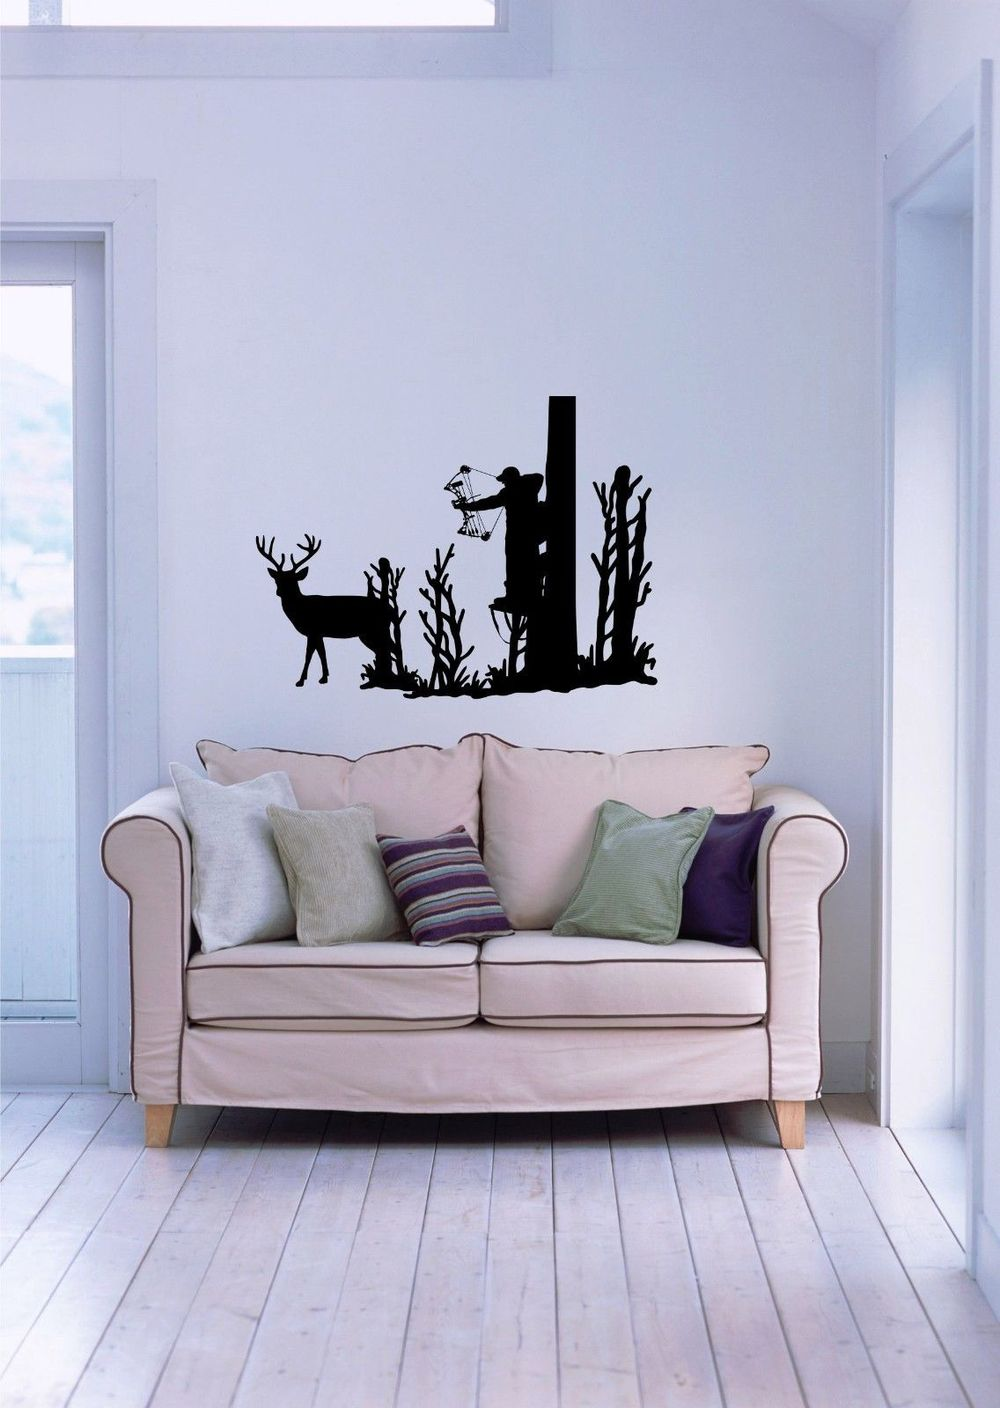 Wall Mural For Living Room Popular Hunting Wall Murals Buy Cheap Hunting Wall Murals Lots